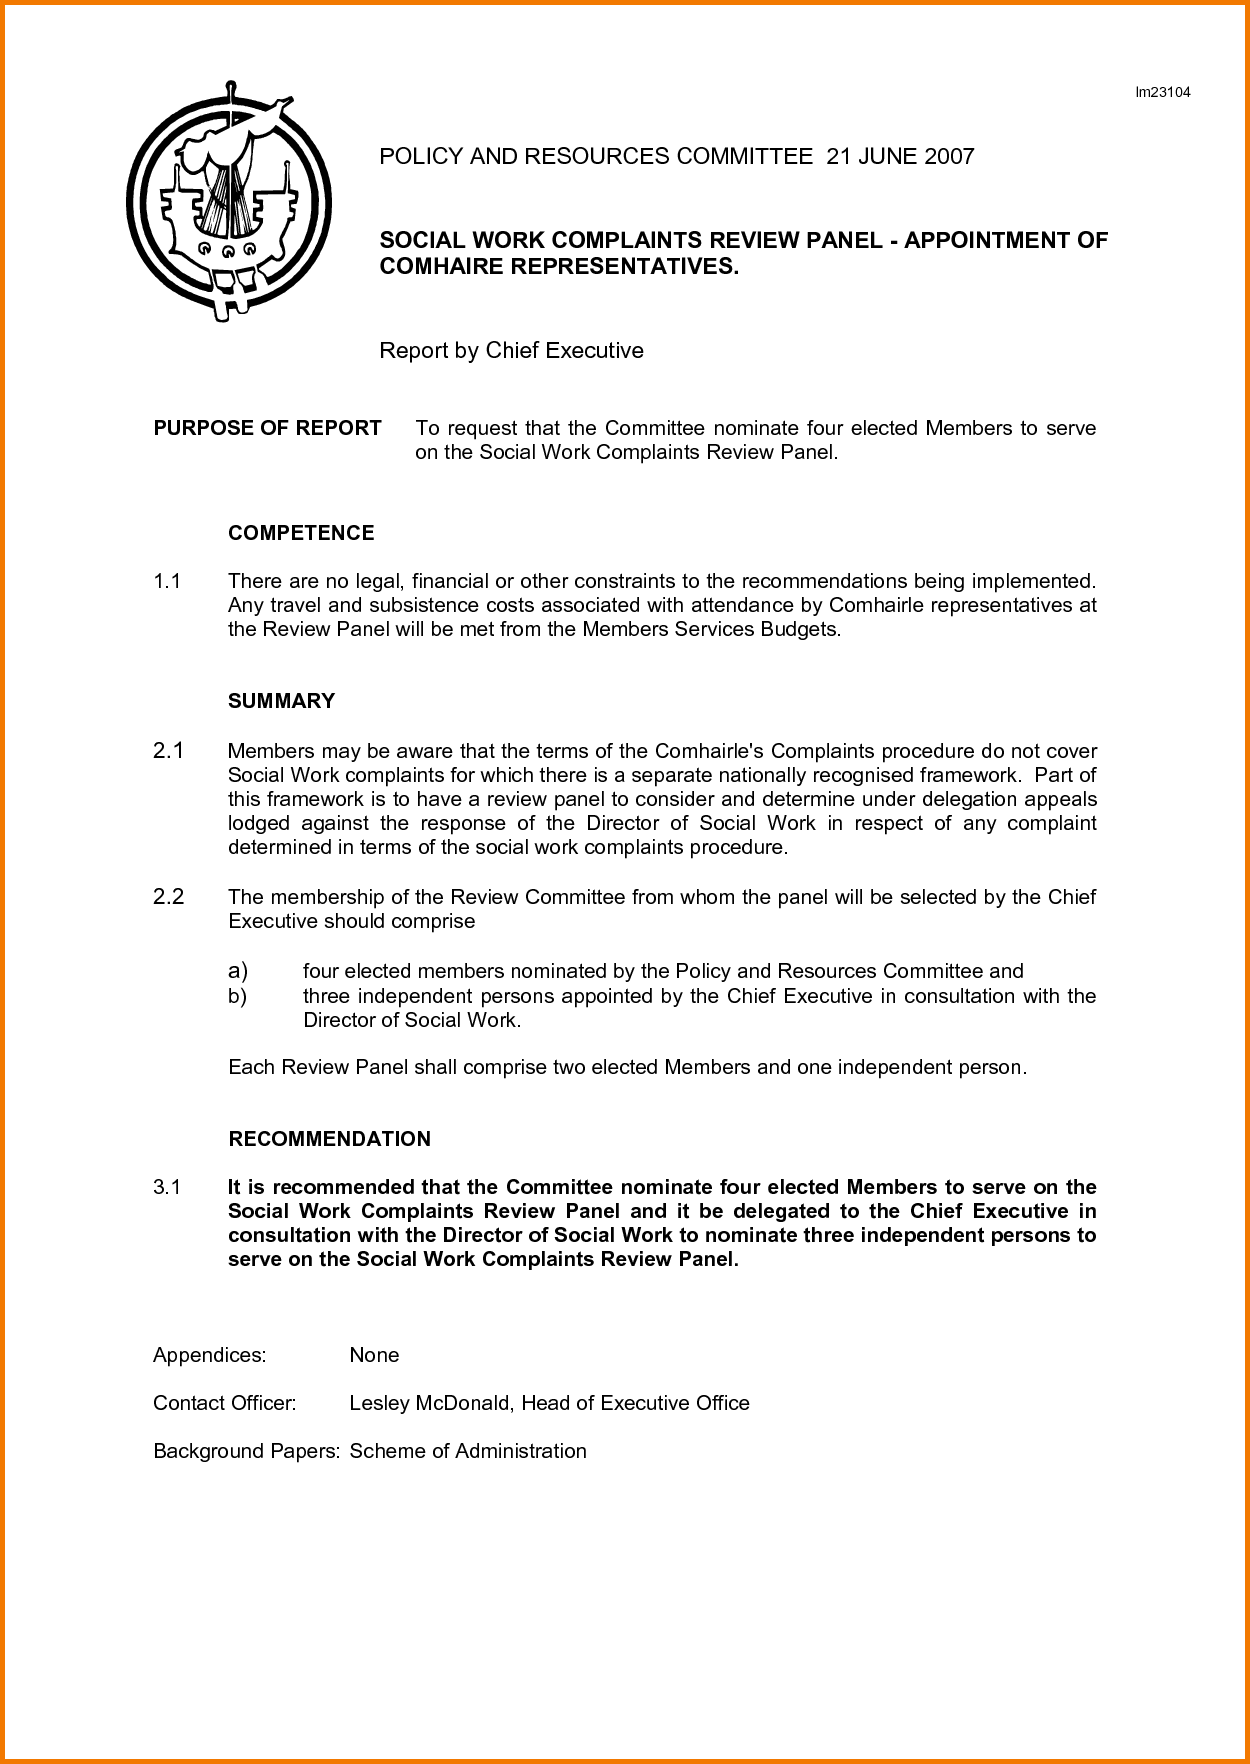 Committee Report Template | merrychristmaswishes.info